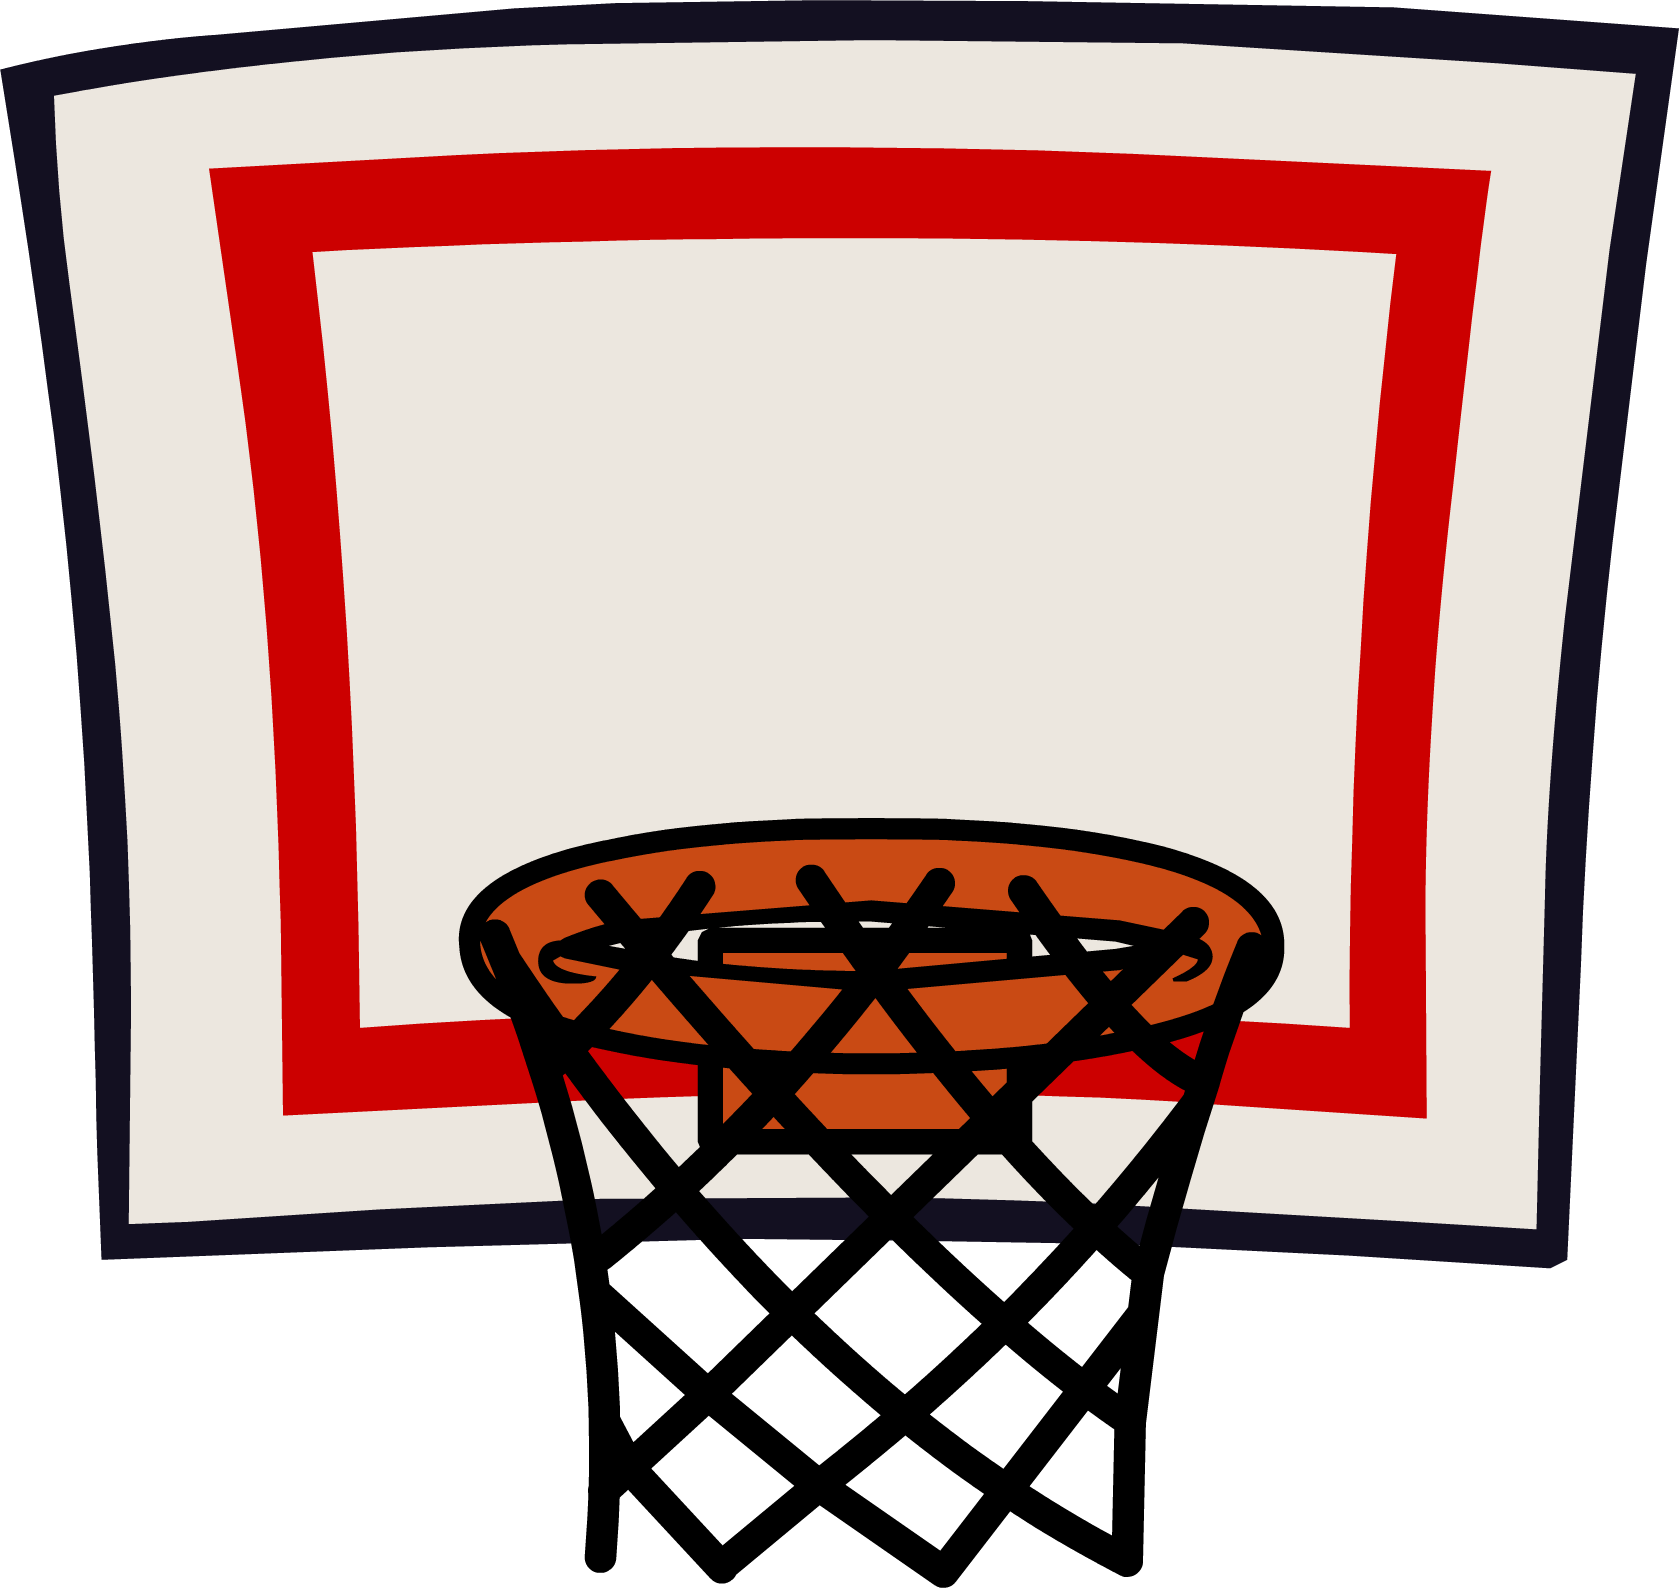 Animated net png. Image basketball club penguin